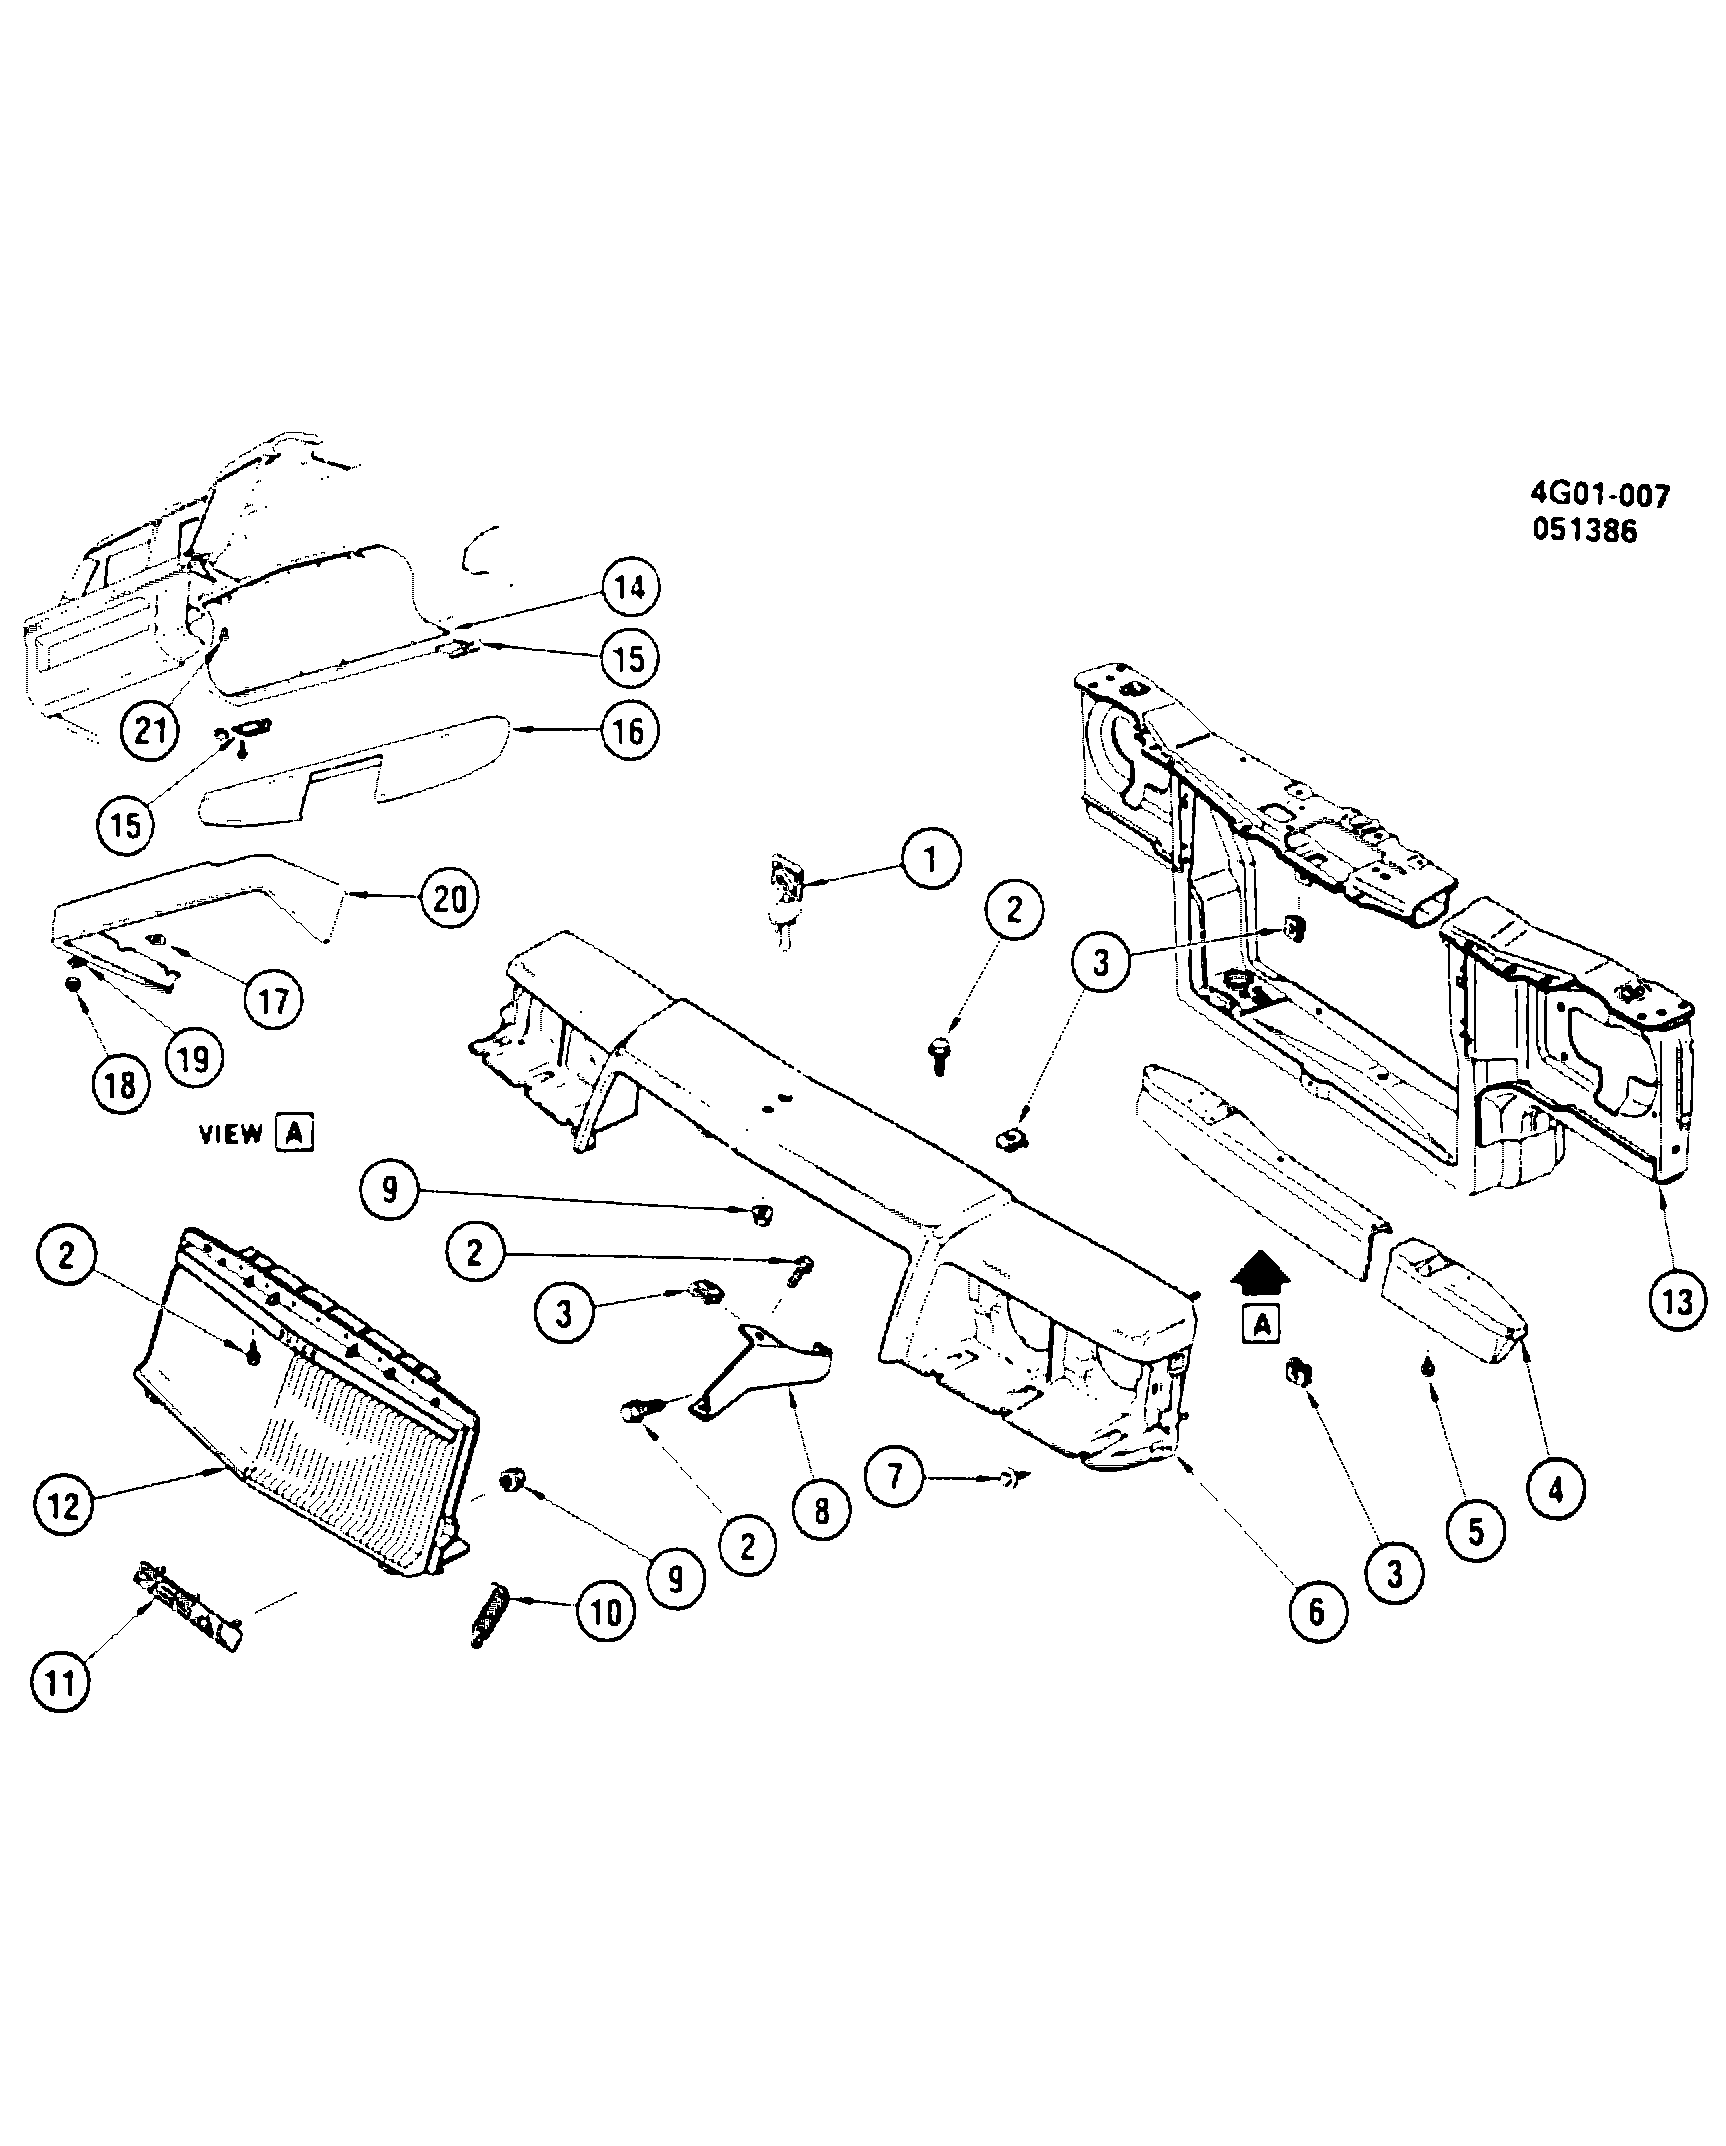 Ford Mustang Parts And Accessories Catalogs